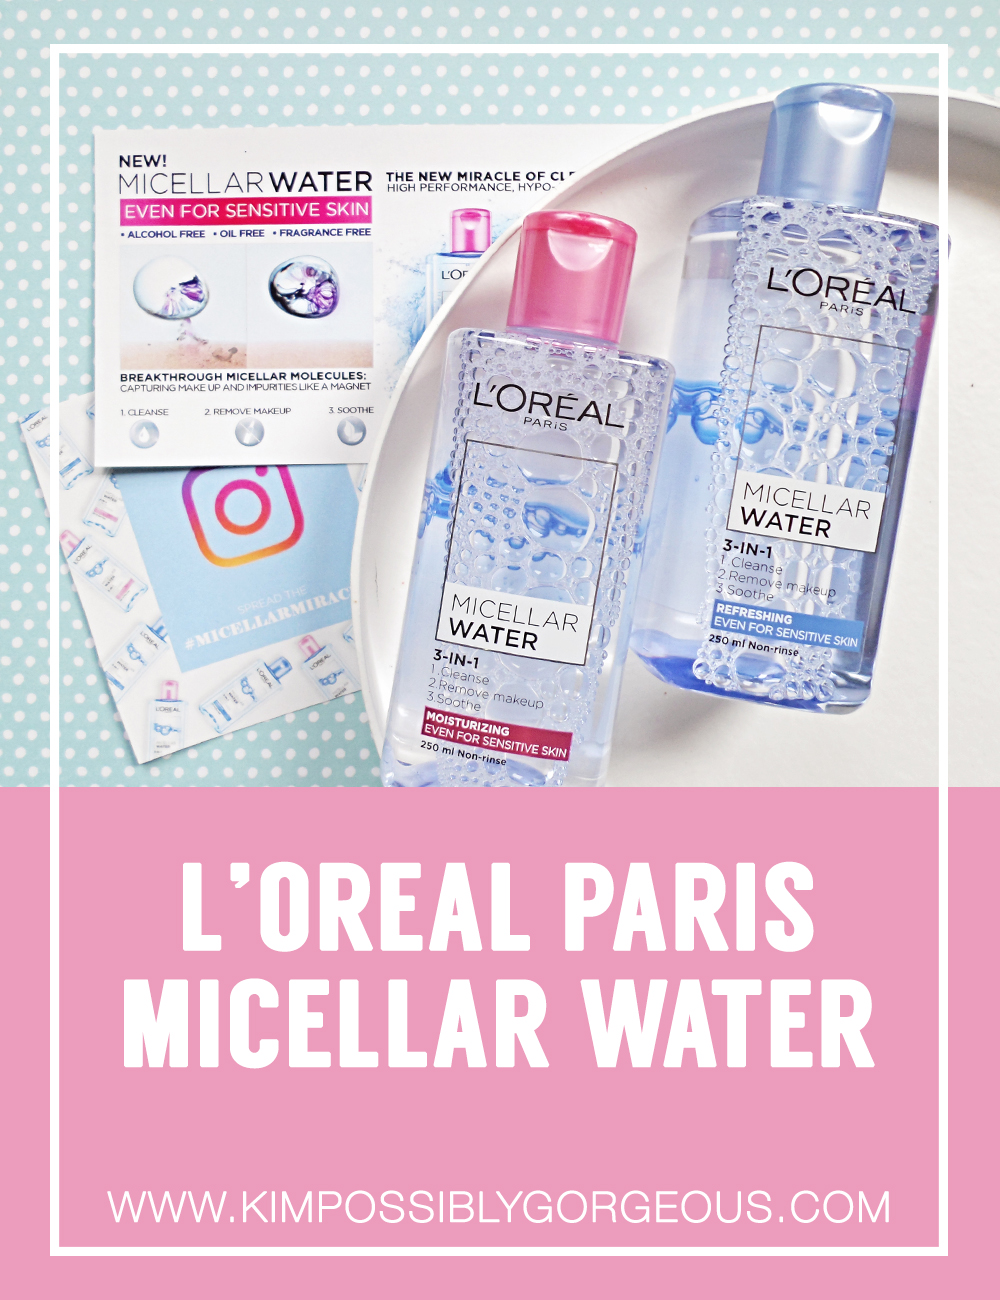 Quick Cleansing Routine Loreal Paris Micellar Water Review L Oreal Makeup 250ml Blue Is Supposed To Remove Clean Face And Hydrate The Skin Without Needing Be Rinsed Off Afterwards When I First Heard Of It